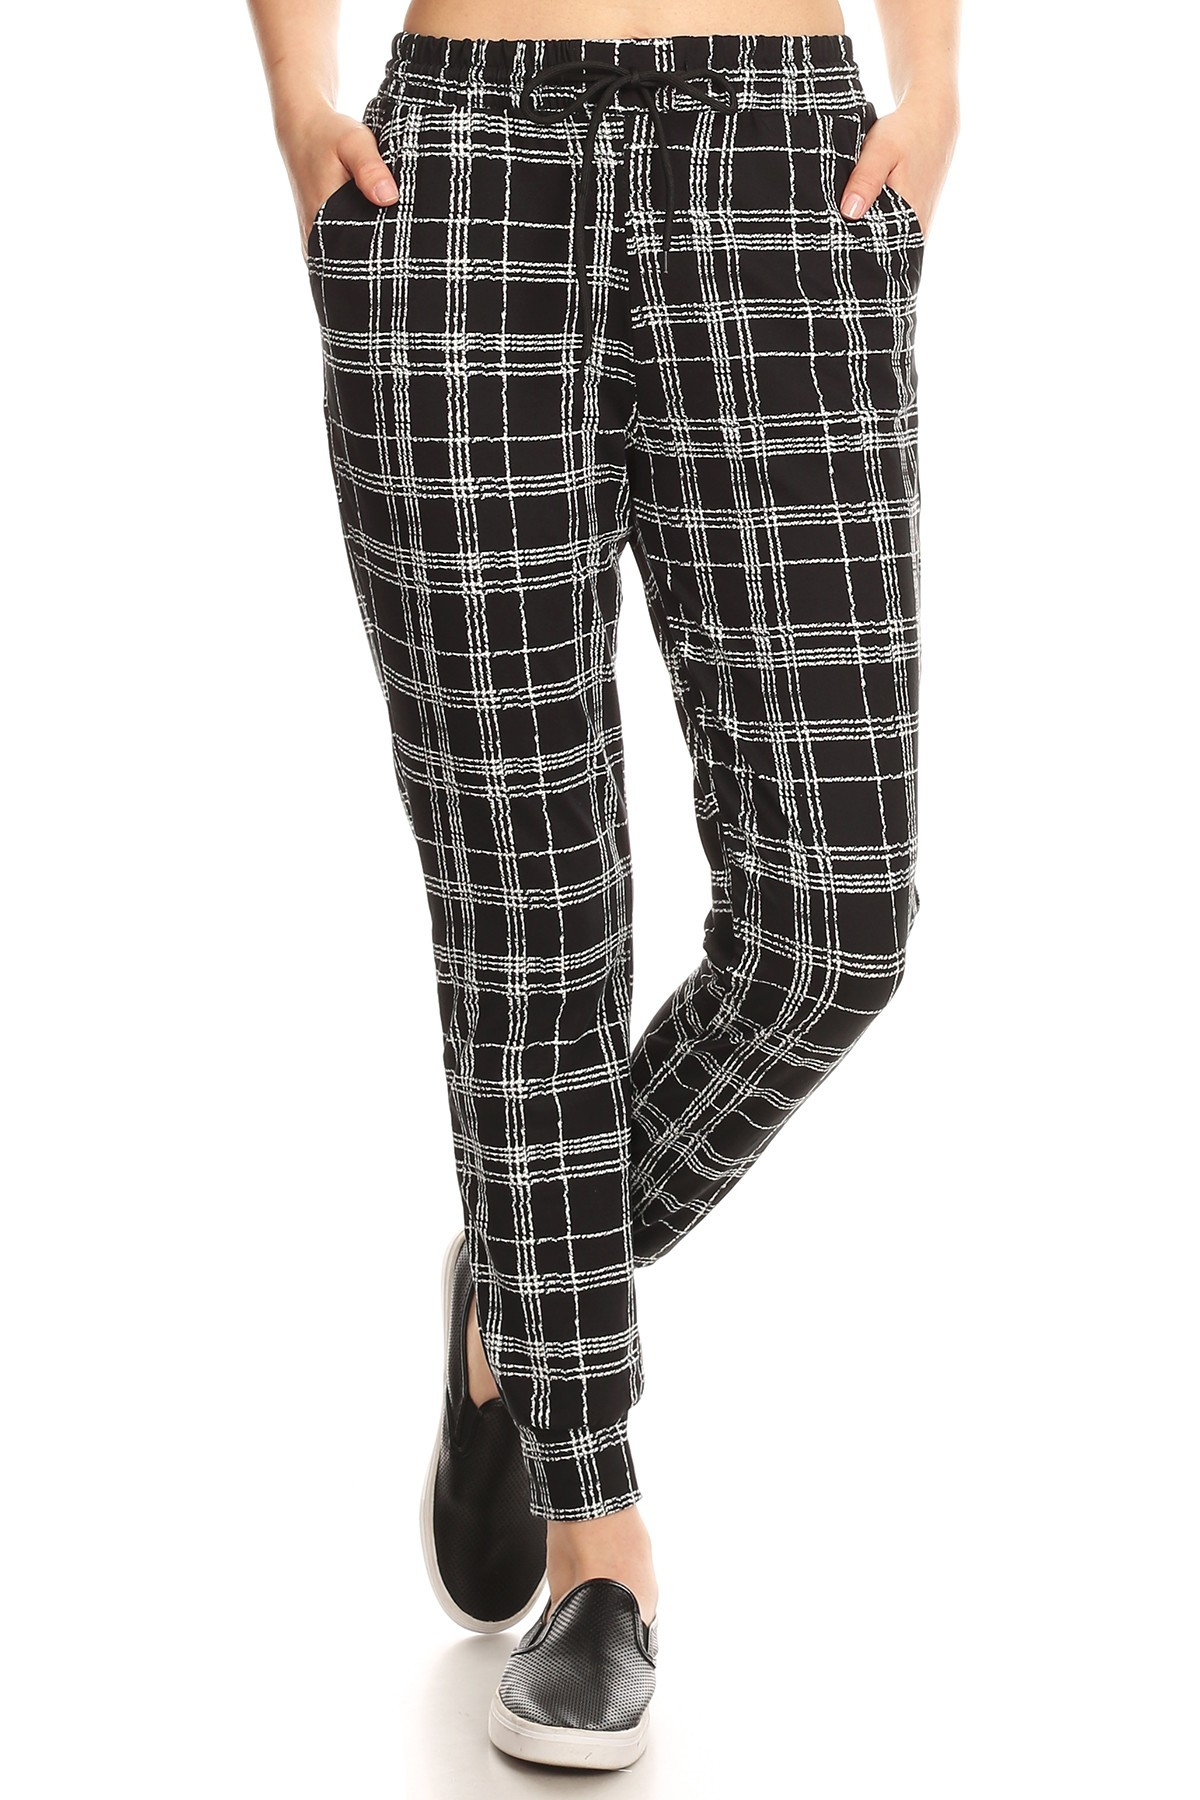 BLACK/WHITE PLAID PRINT JOGGER WITH SHOE LACE TIE#8TRK36-06